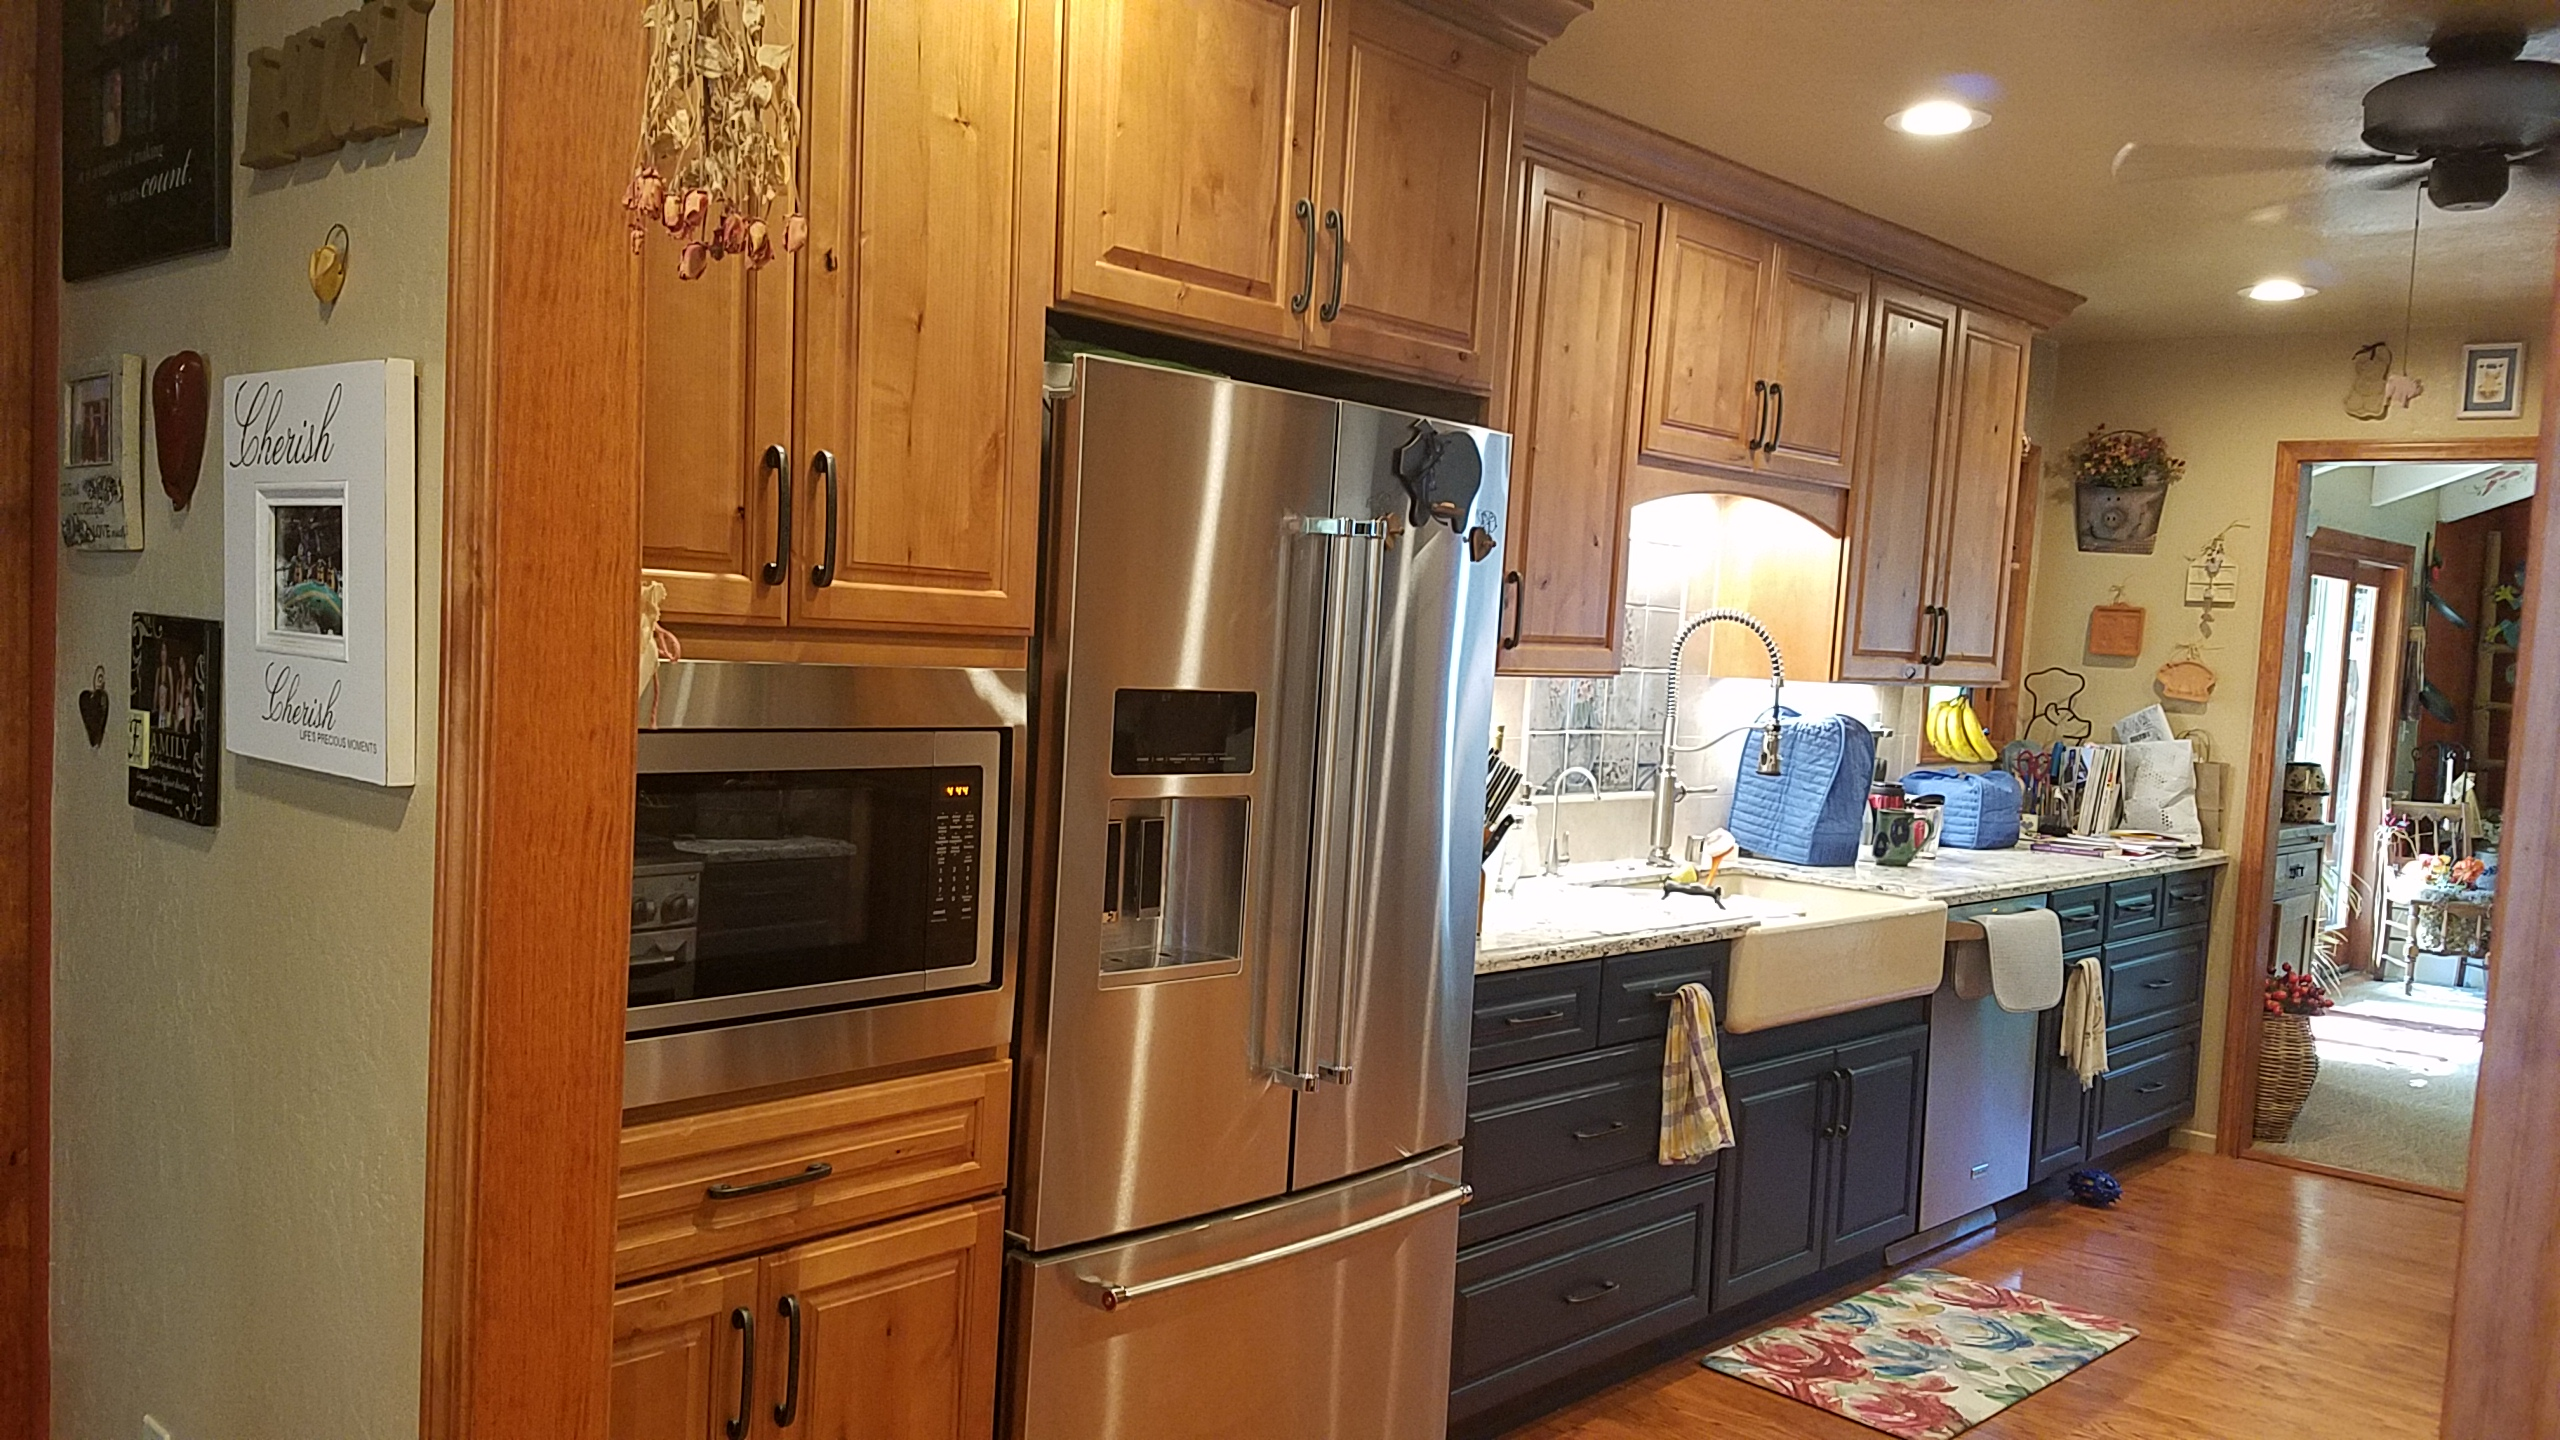 Country style cabinets, microwave and refridgerator